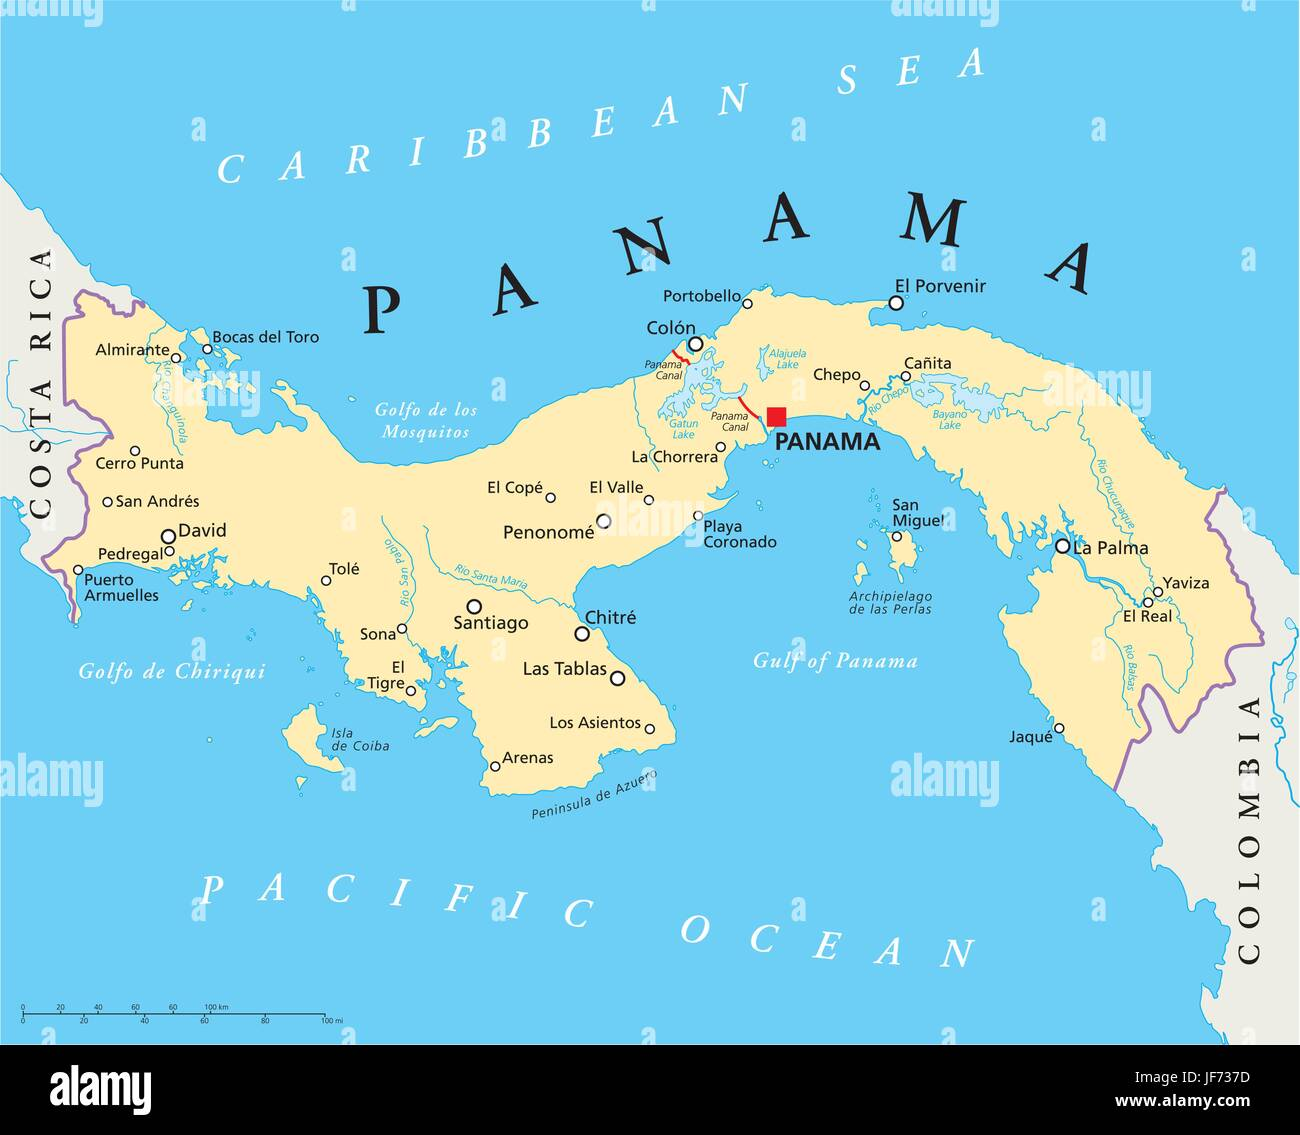 route, panama, canal, map, shipping, atlas, map of the world